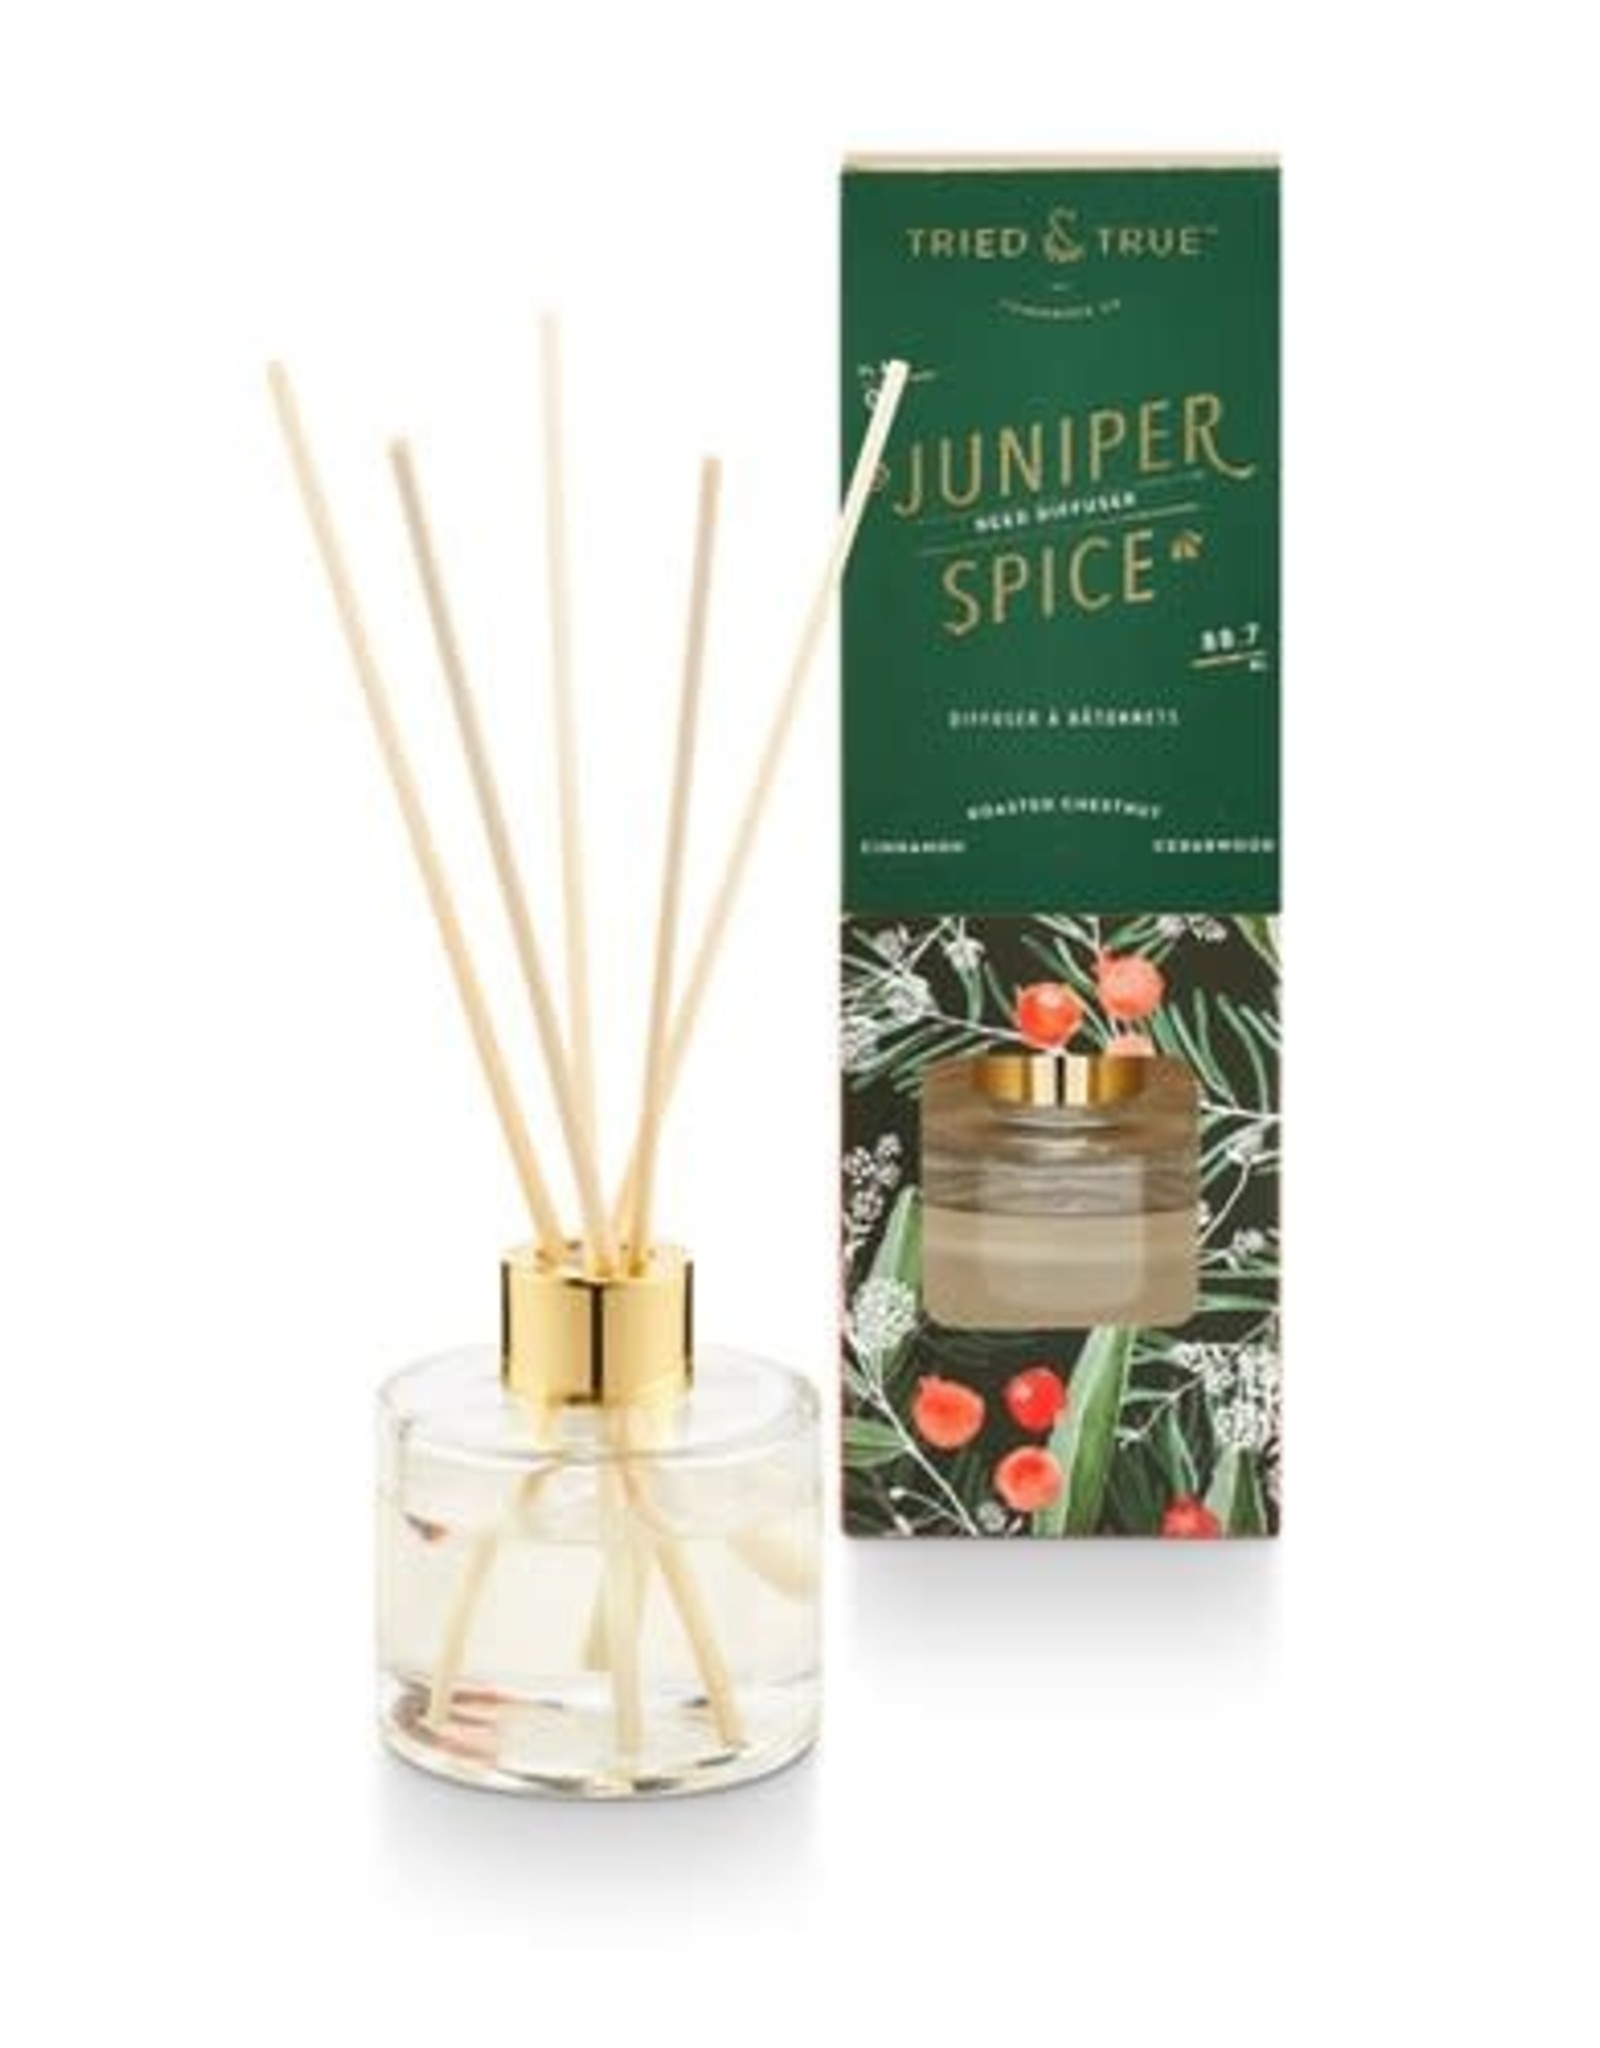 Diffuseur - Tried & true - Juniper spice